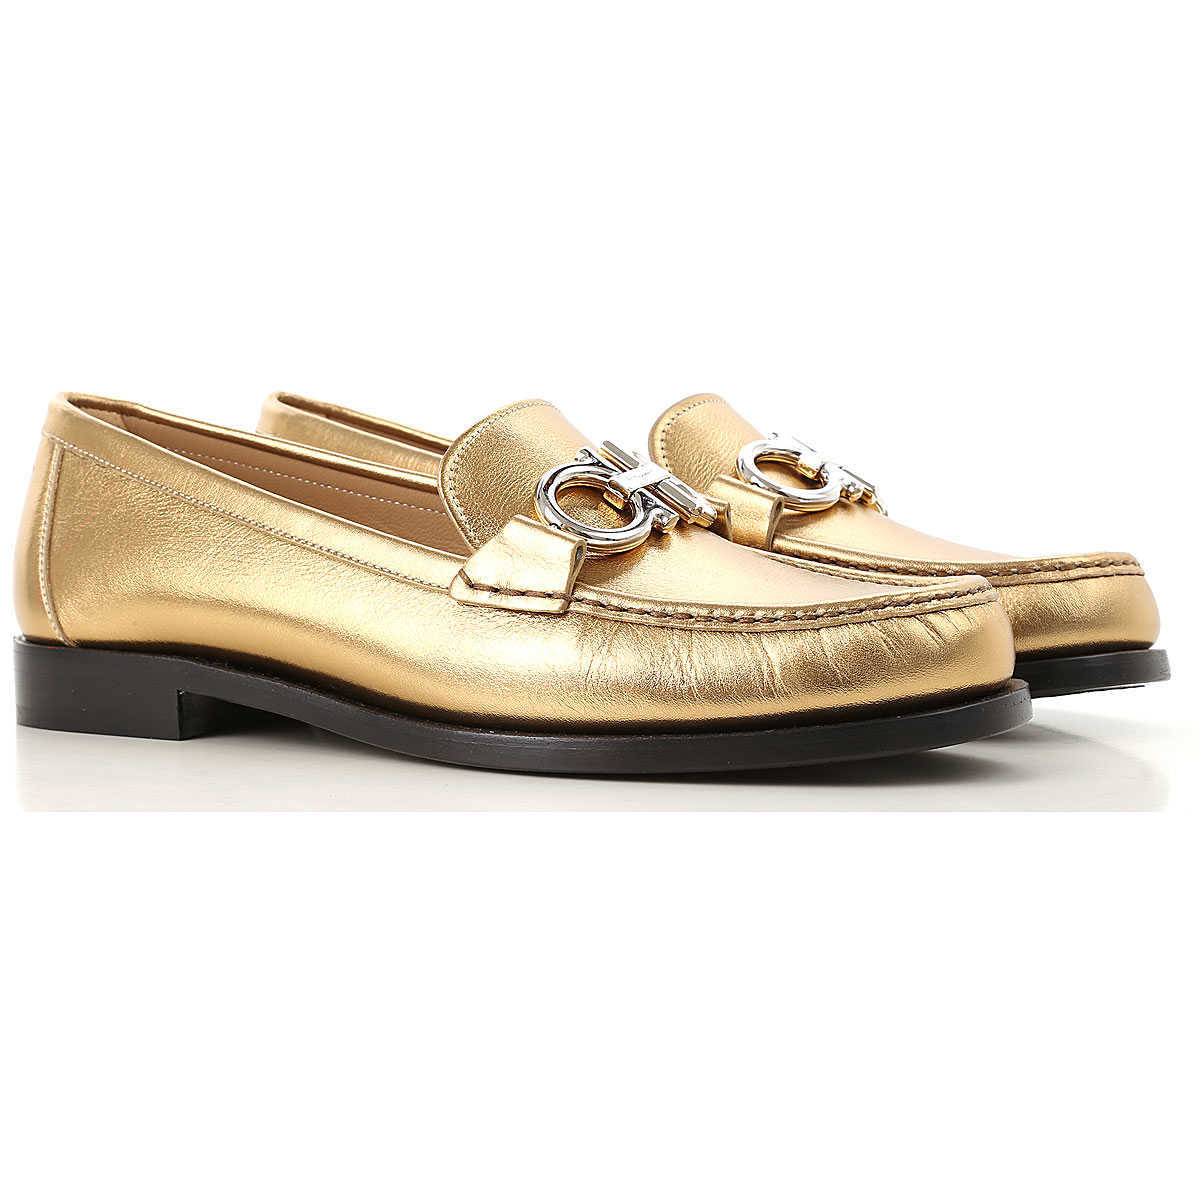 Salvatore Ferragamo Loafers for Women On Sale in Outlet Gold - GOOFASH